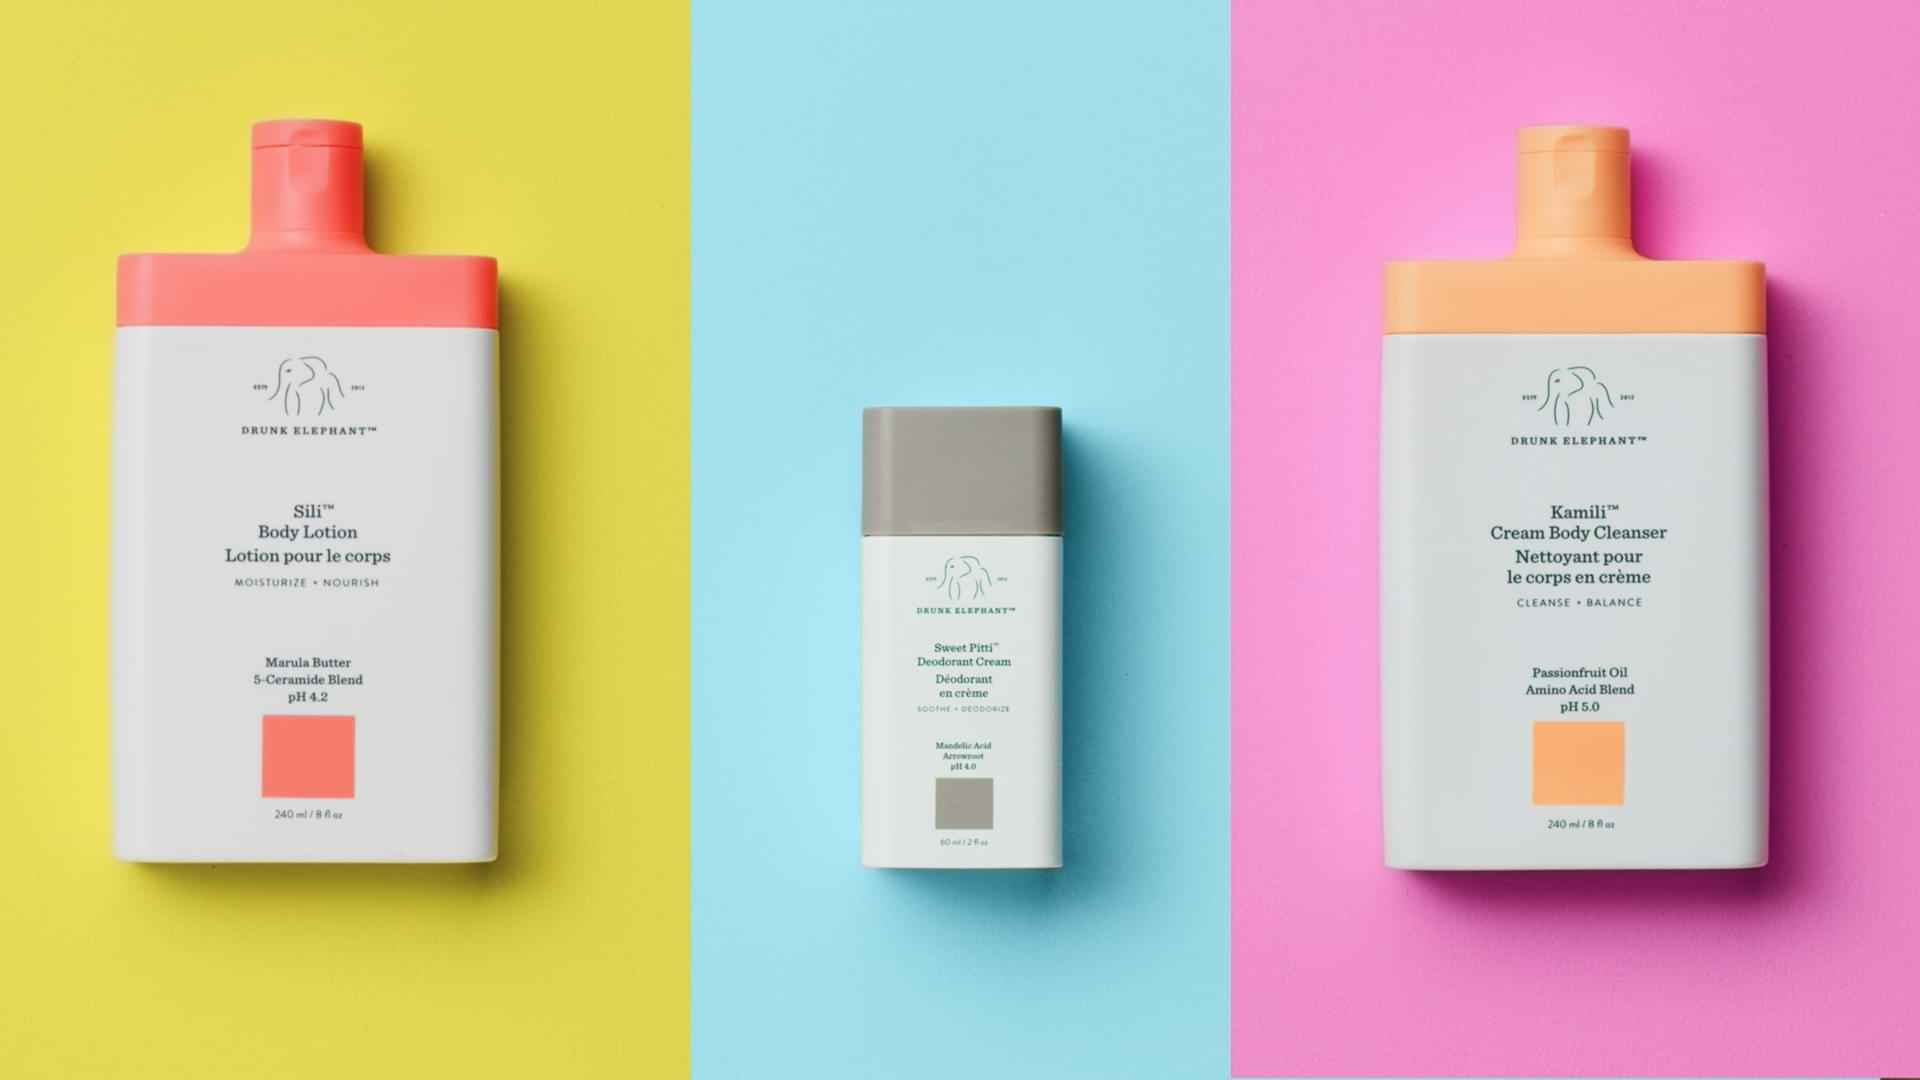 video introducing the body line of products from Drunk Elephant